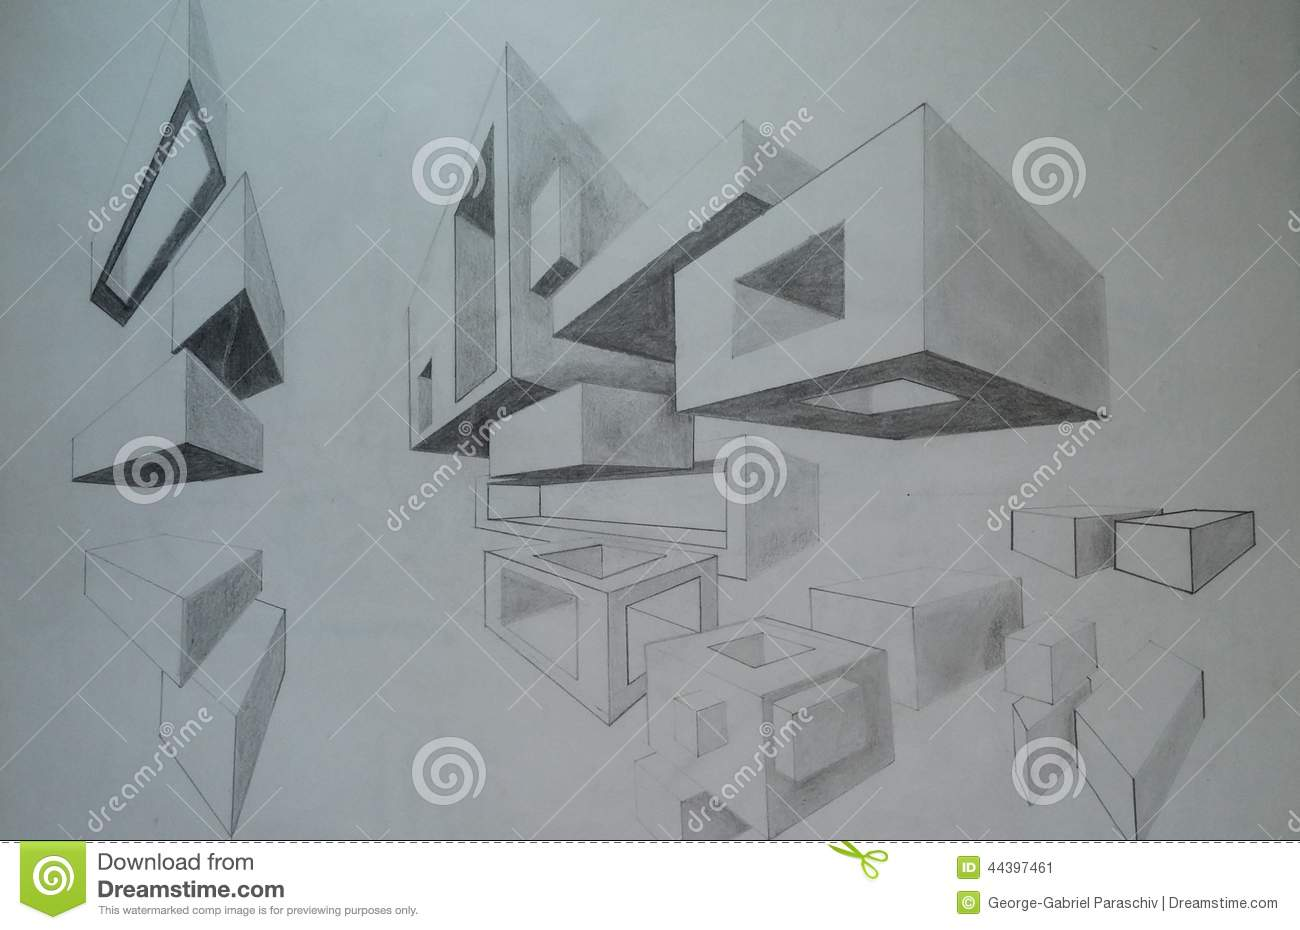 Two vanishing points perspective - cubes and 3d shapes pencil drawing